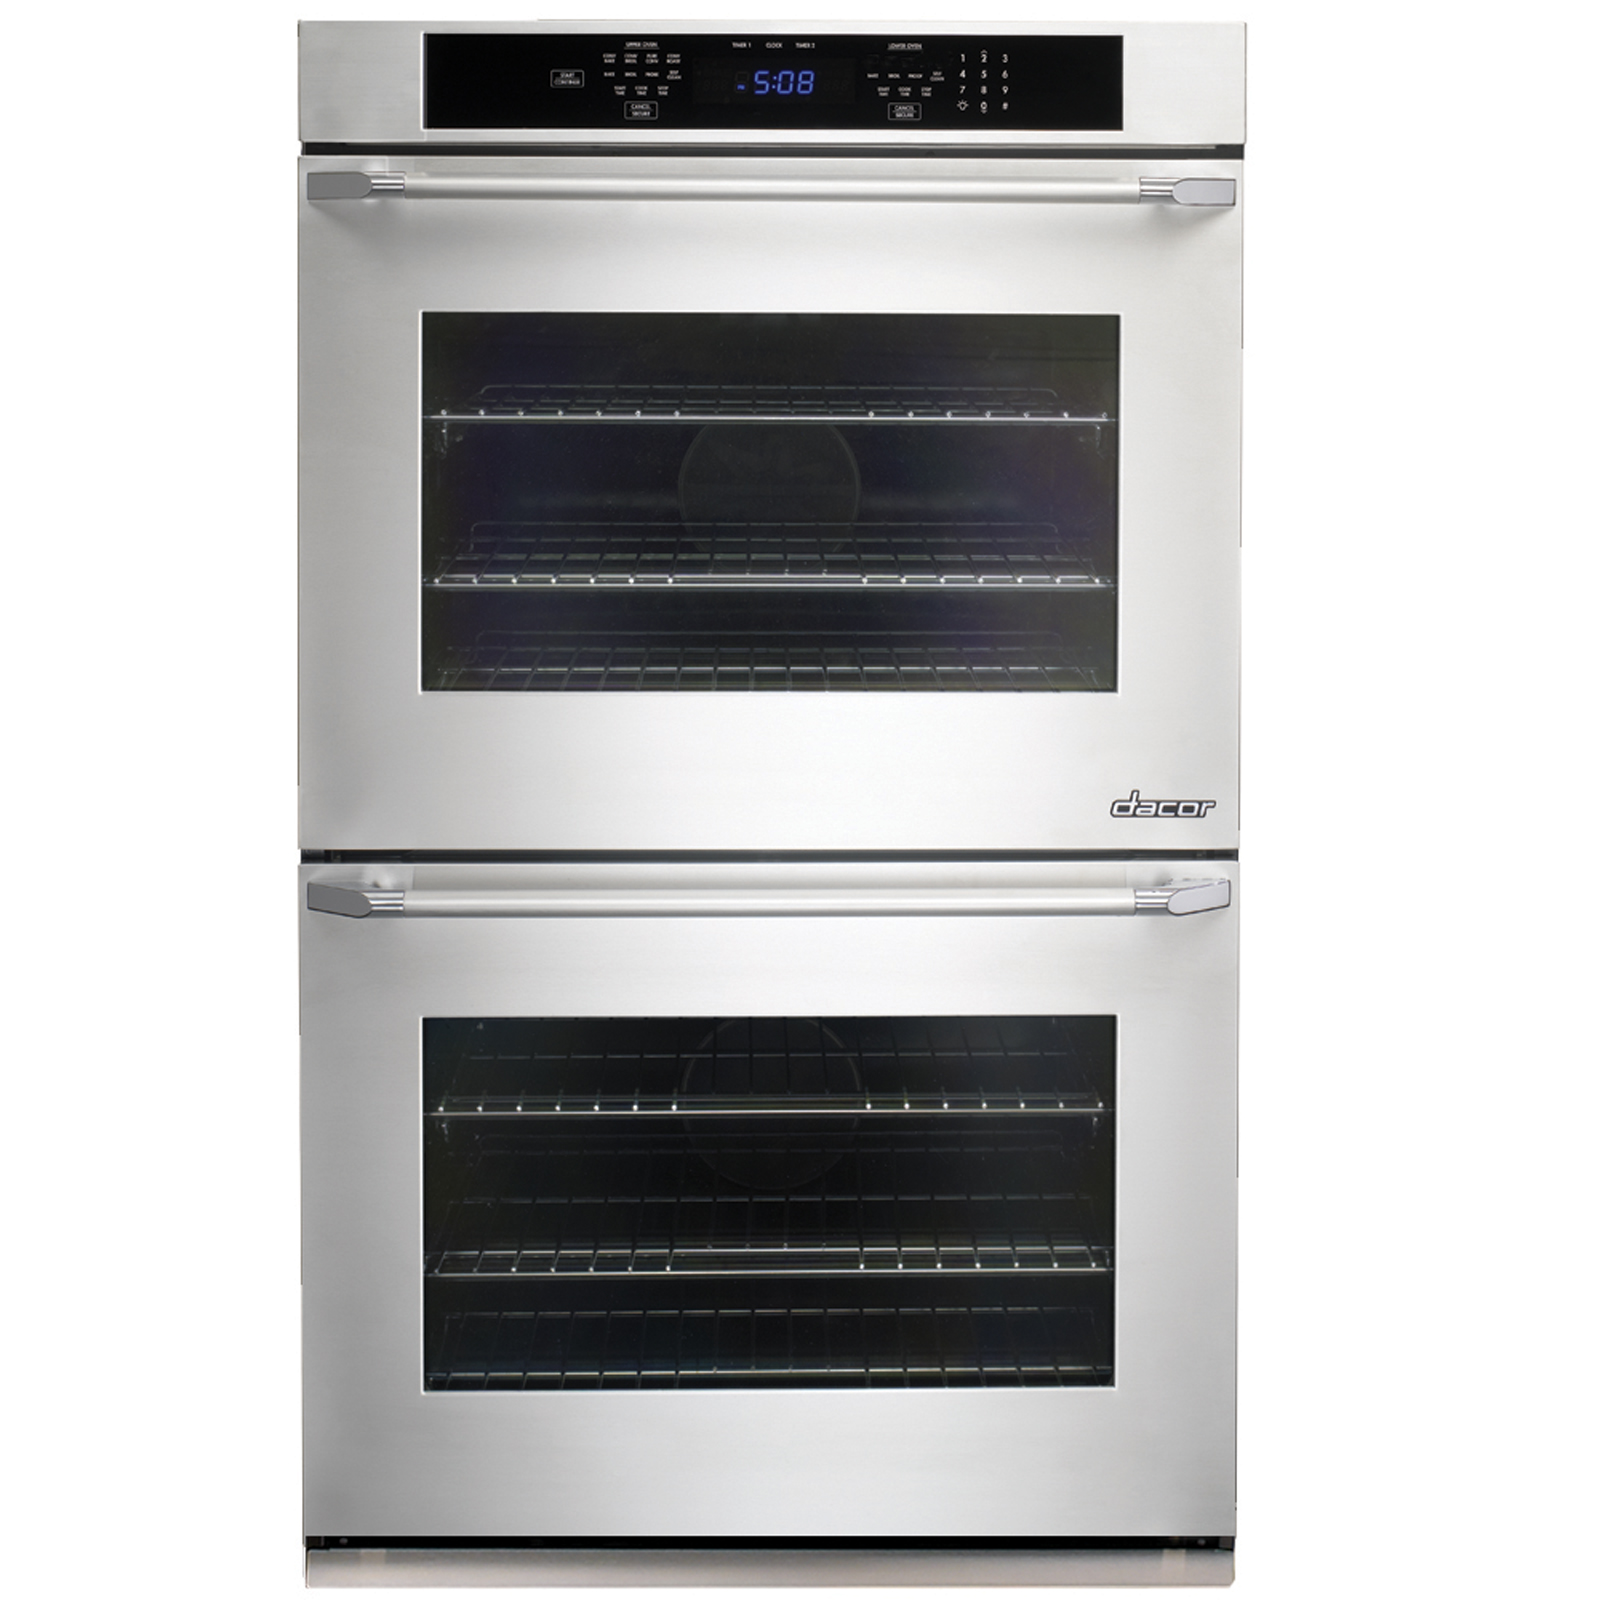 "Dacor Distinctive® 30"" Double Wall Oven - Stainless Steel w/ Epicure Styles SS handle w/ Chrome End Caps PartNumber: 02251103000P KsnValue: 02251103000 MfgPartNumber: DTO230S"